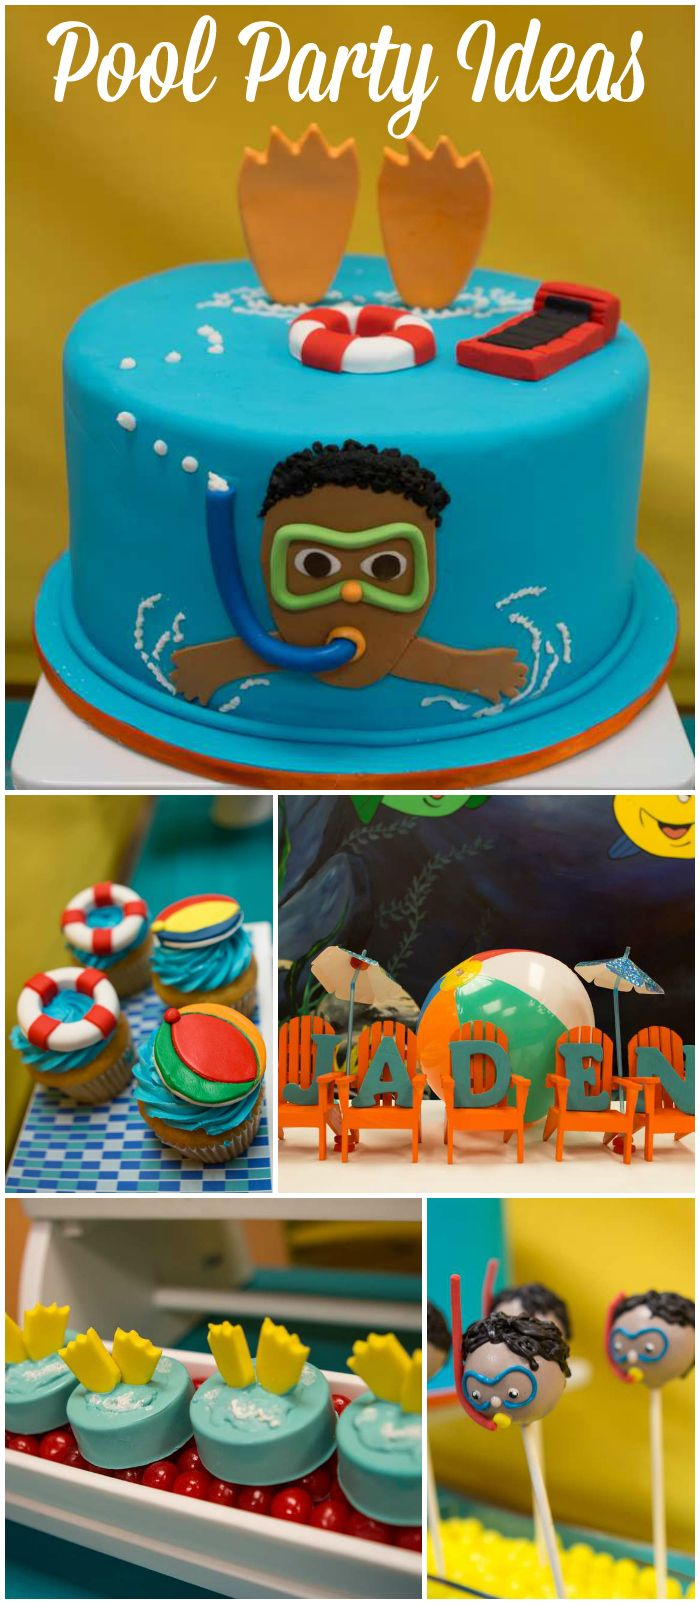 Birthday Pool Party Ideas For Kids pool party birthday pool party fun wo sun Pool Party Birthday Pool Party Fun Wo Sun